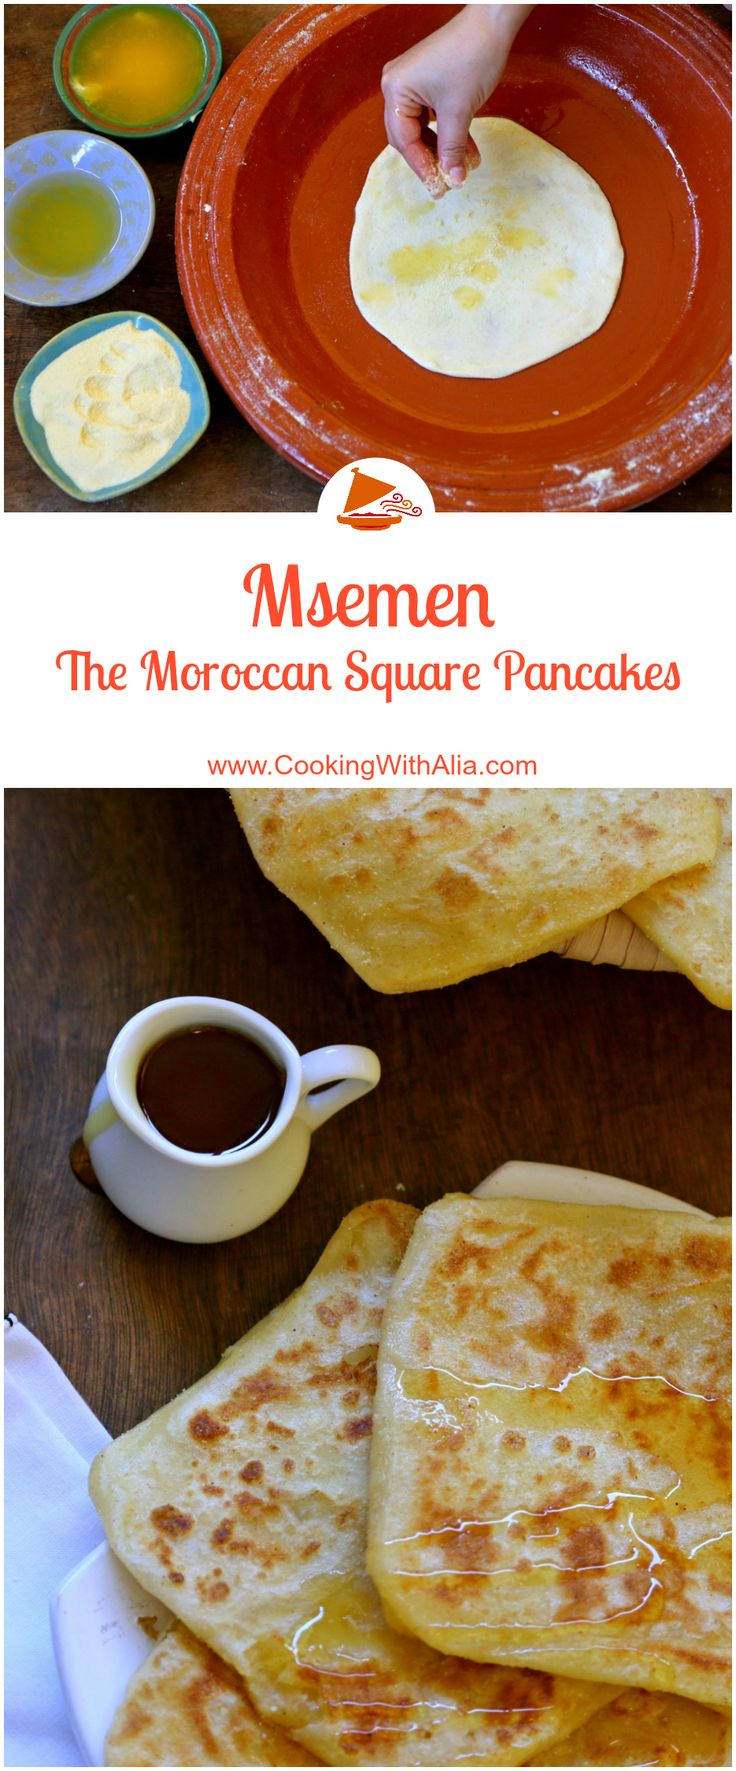 Msemen, also called Rghaif, are square flat Moroccan pancakes. If you visit Morocco, it is guaranteed that you will be served these pancakes for breakfast with a side of butter and honey. With a crispy outside and chewy inside, these pancakes have the perfect texture combination. Practice is required to get the right texture of the dough, so give it a try a few times and don't give up, because the result is to die for! You can order my book here: www.amazon.com #Morocco_cuisine…